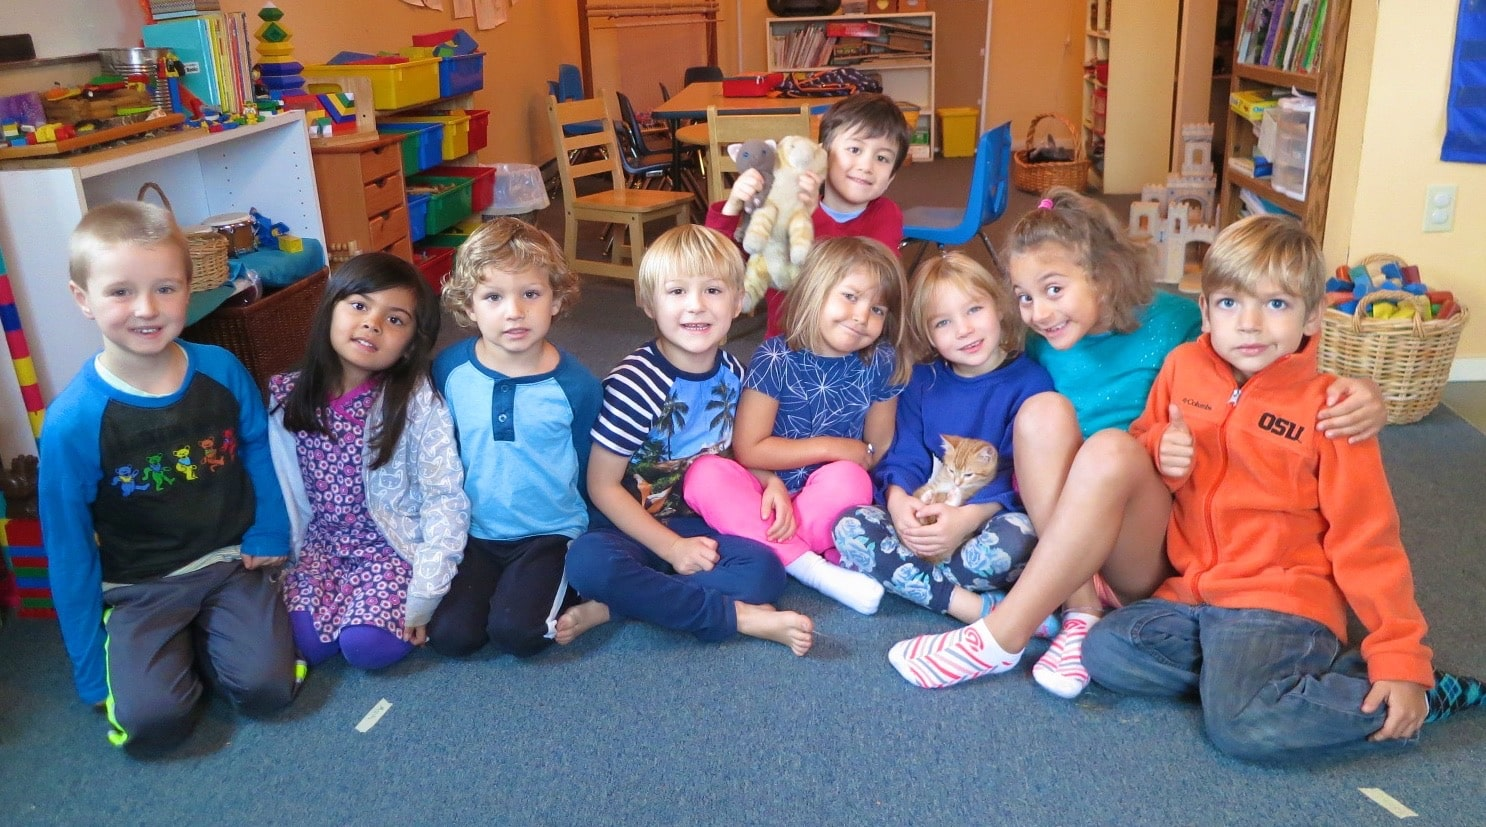 Kindergarten in Beaverton, Oregon with a small class size having fun in the classroom